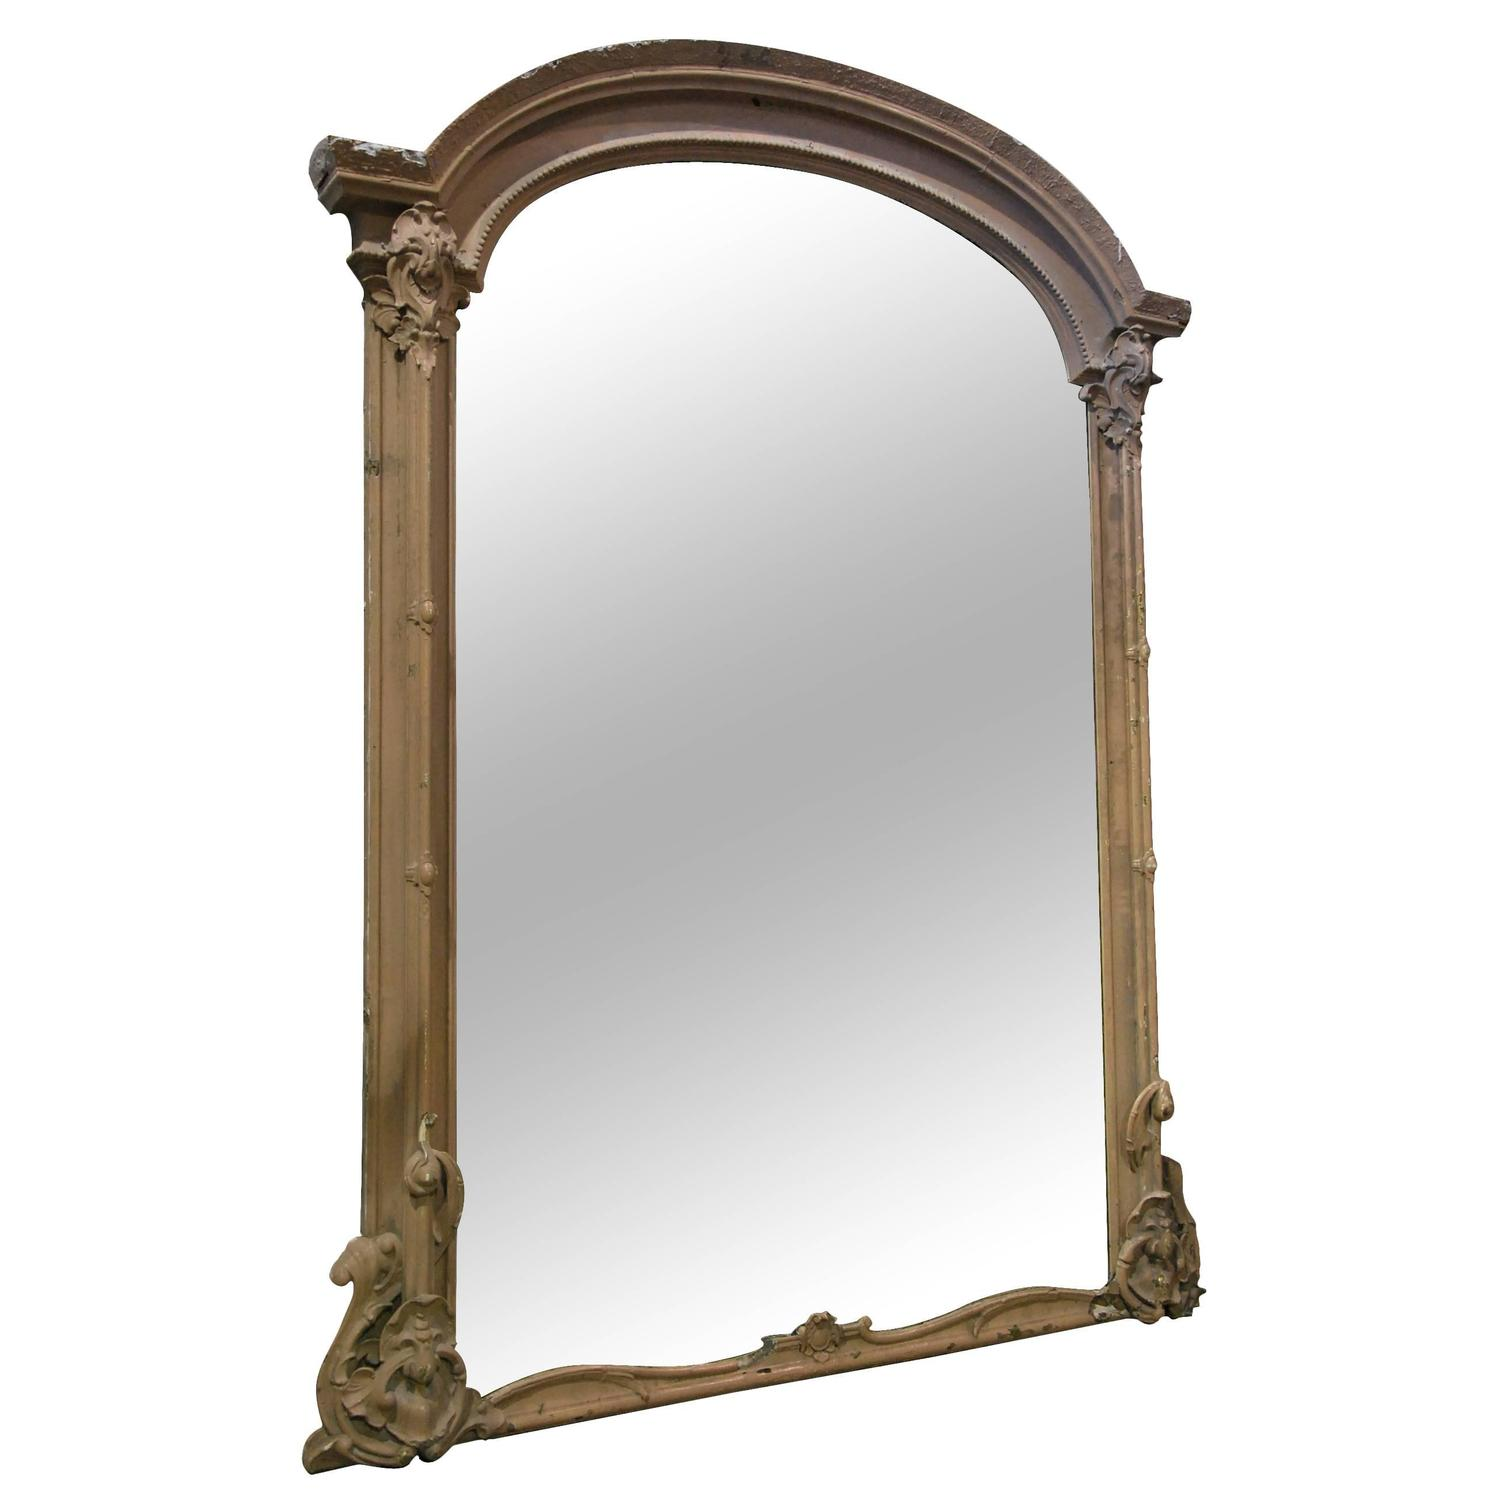 19th century large french style gilded mirror at 1stdibs